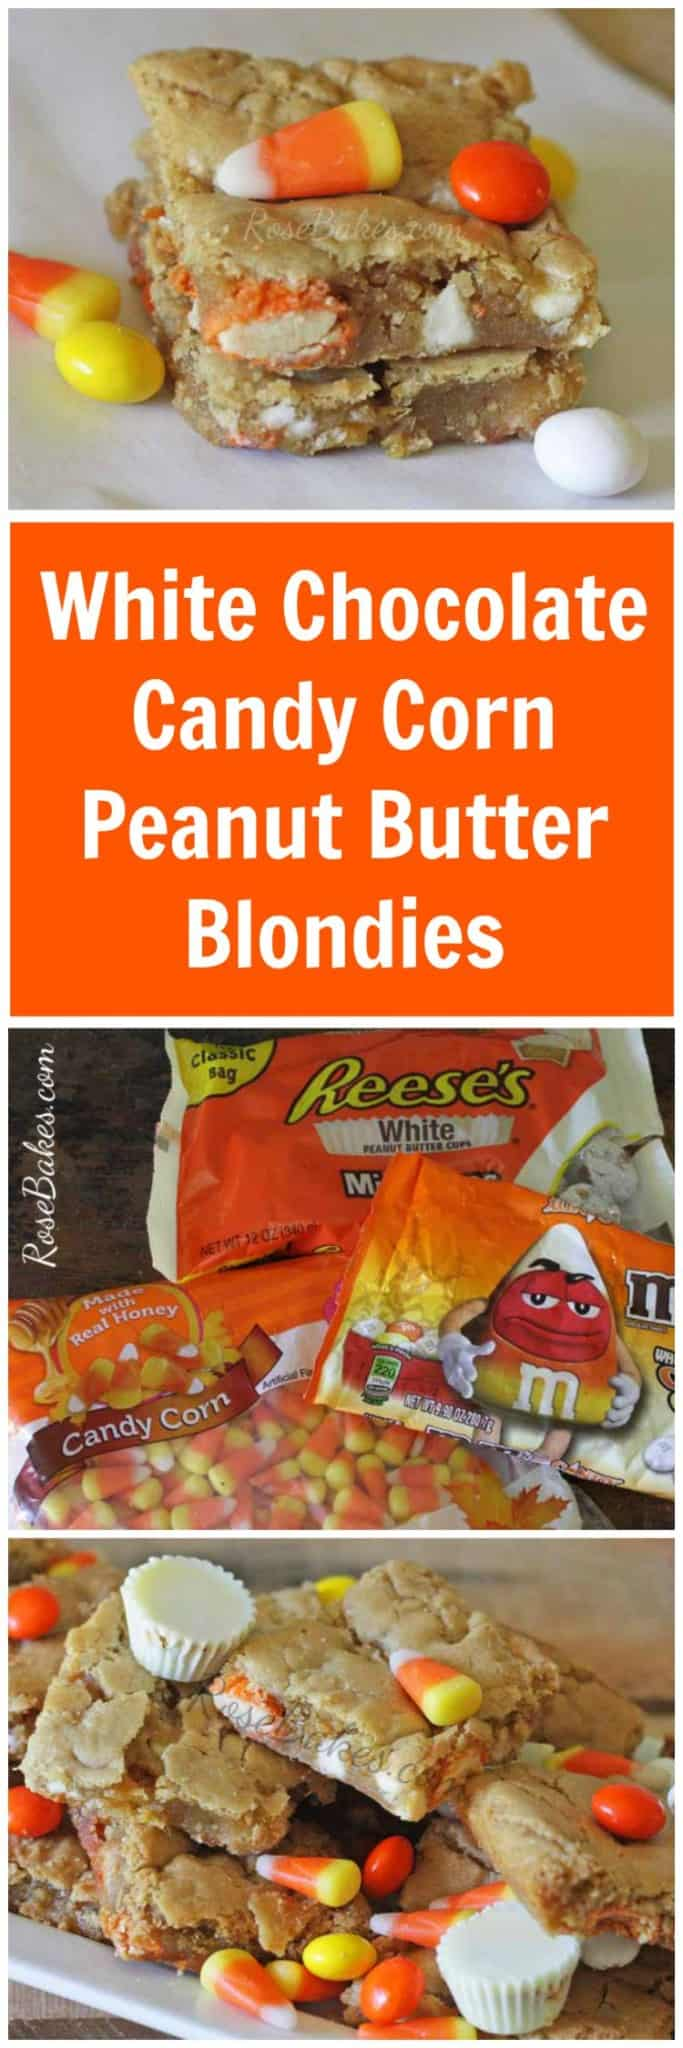 White Chocolate Candy Corn Peanut Butter Blondies - Make this Perfect ...